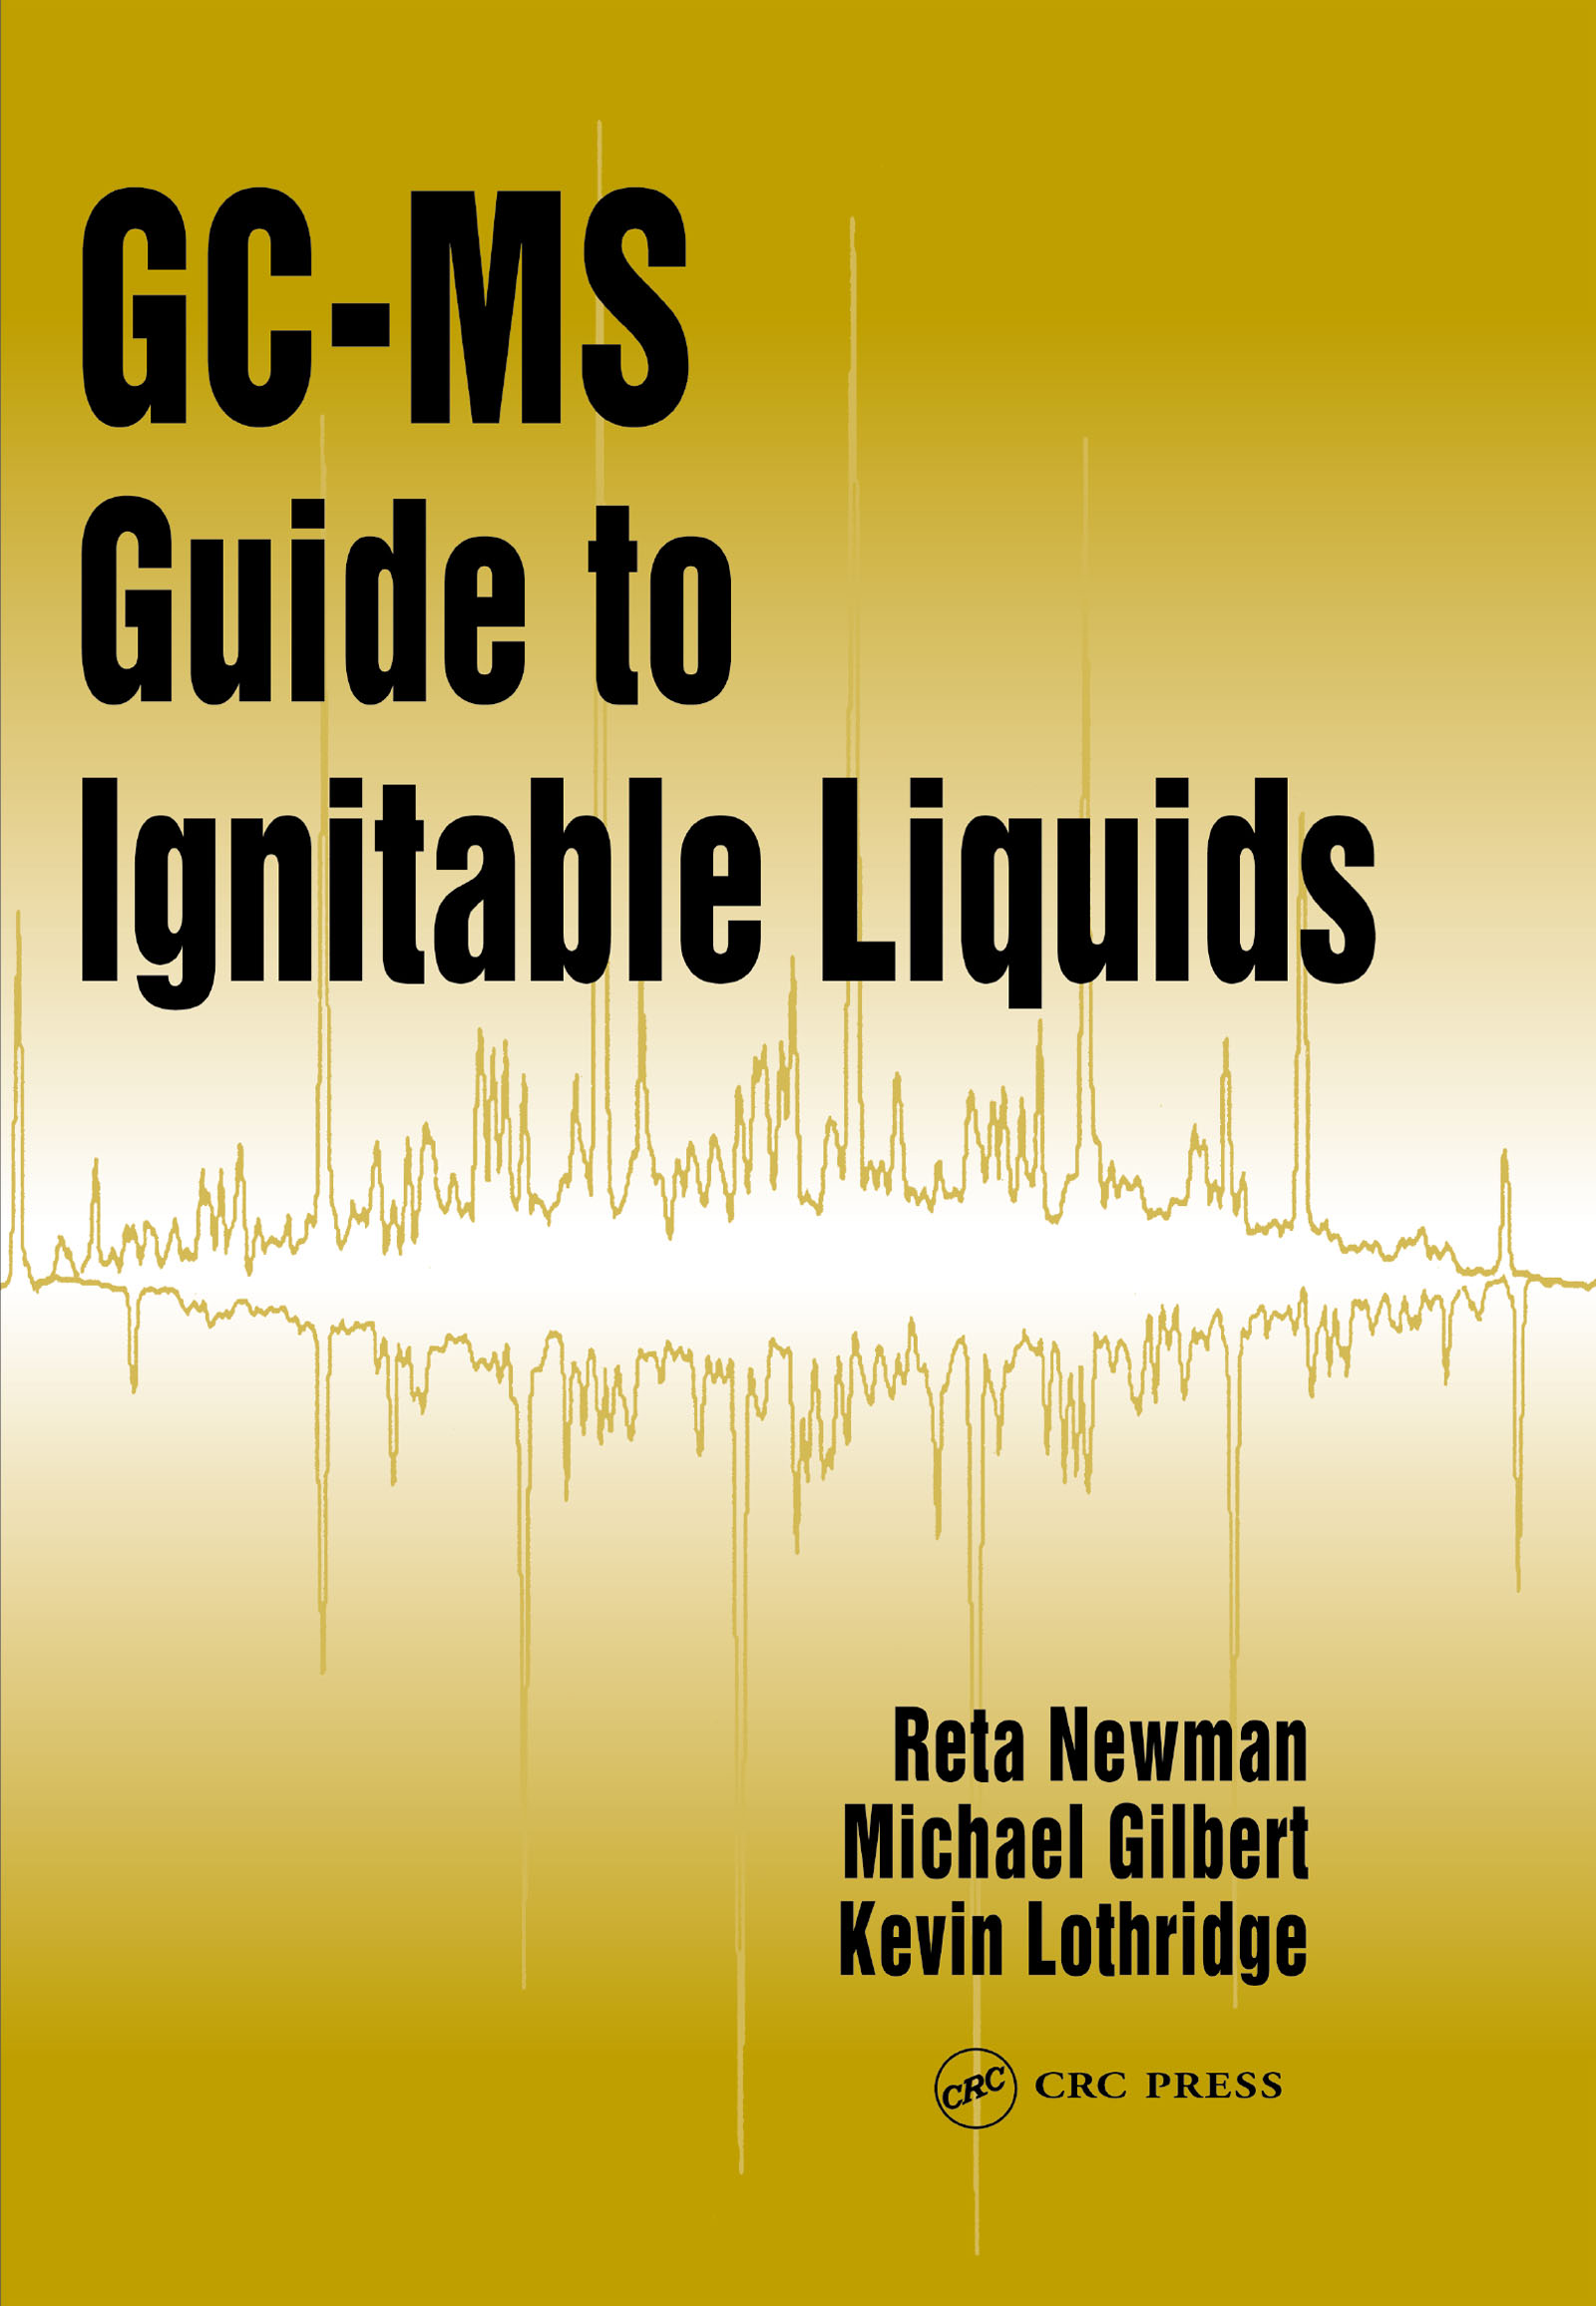 GC-MS Guide to Ignitable Liquids